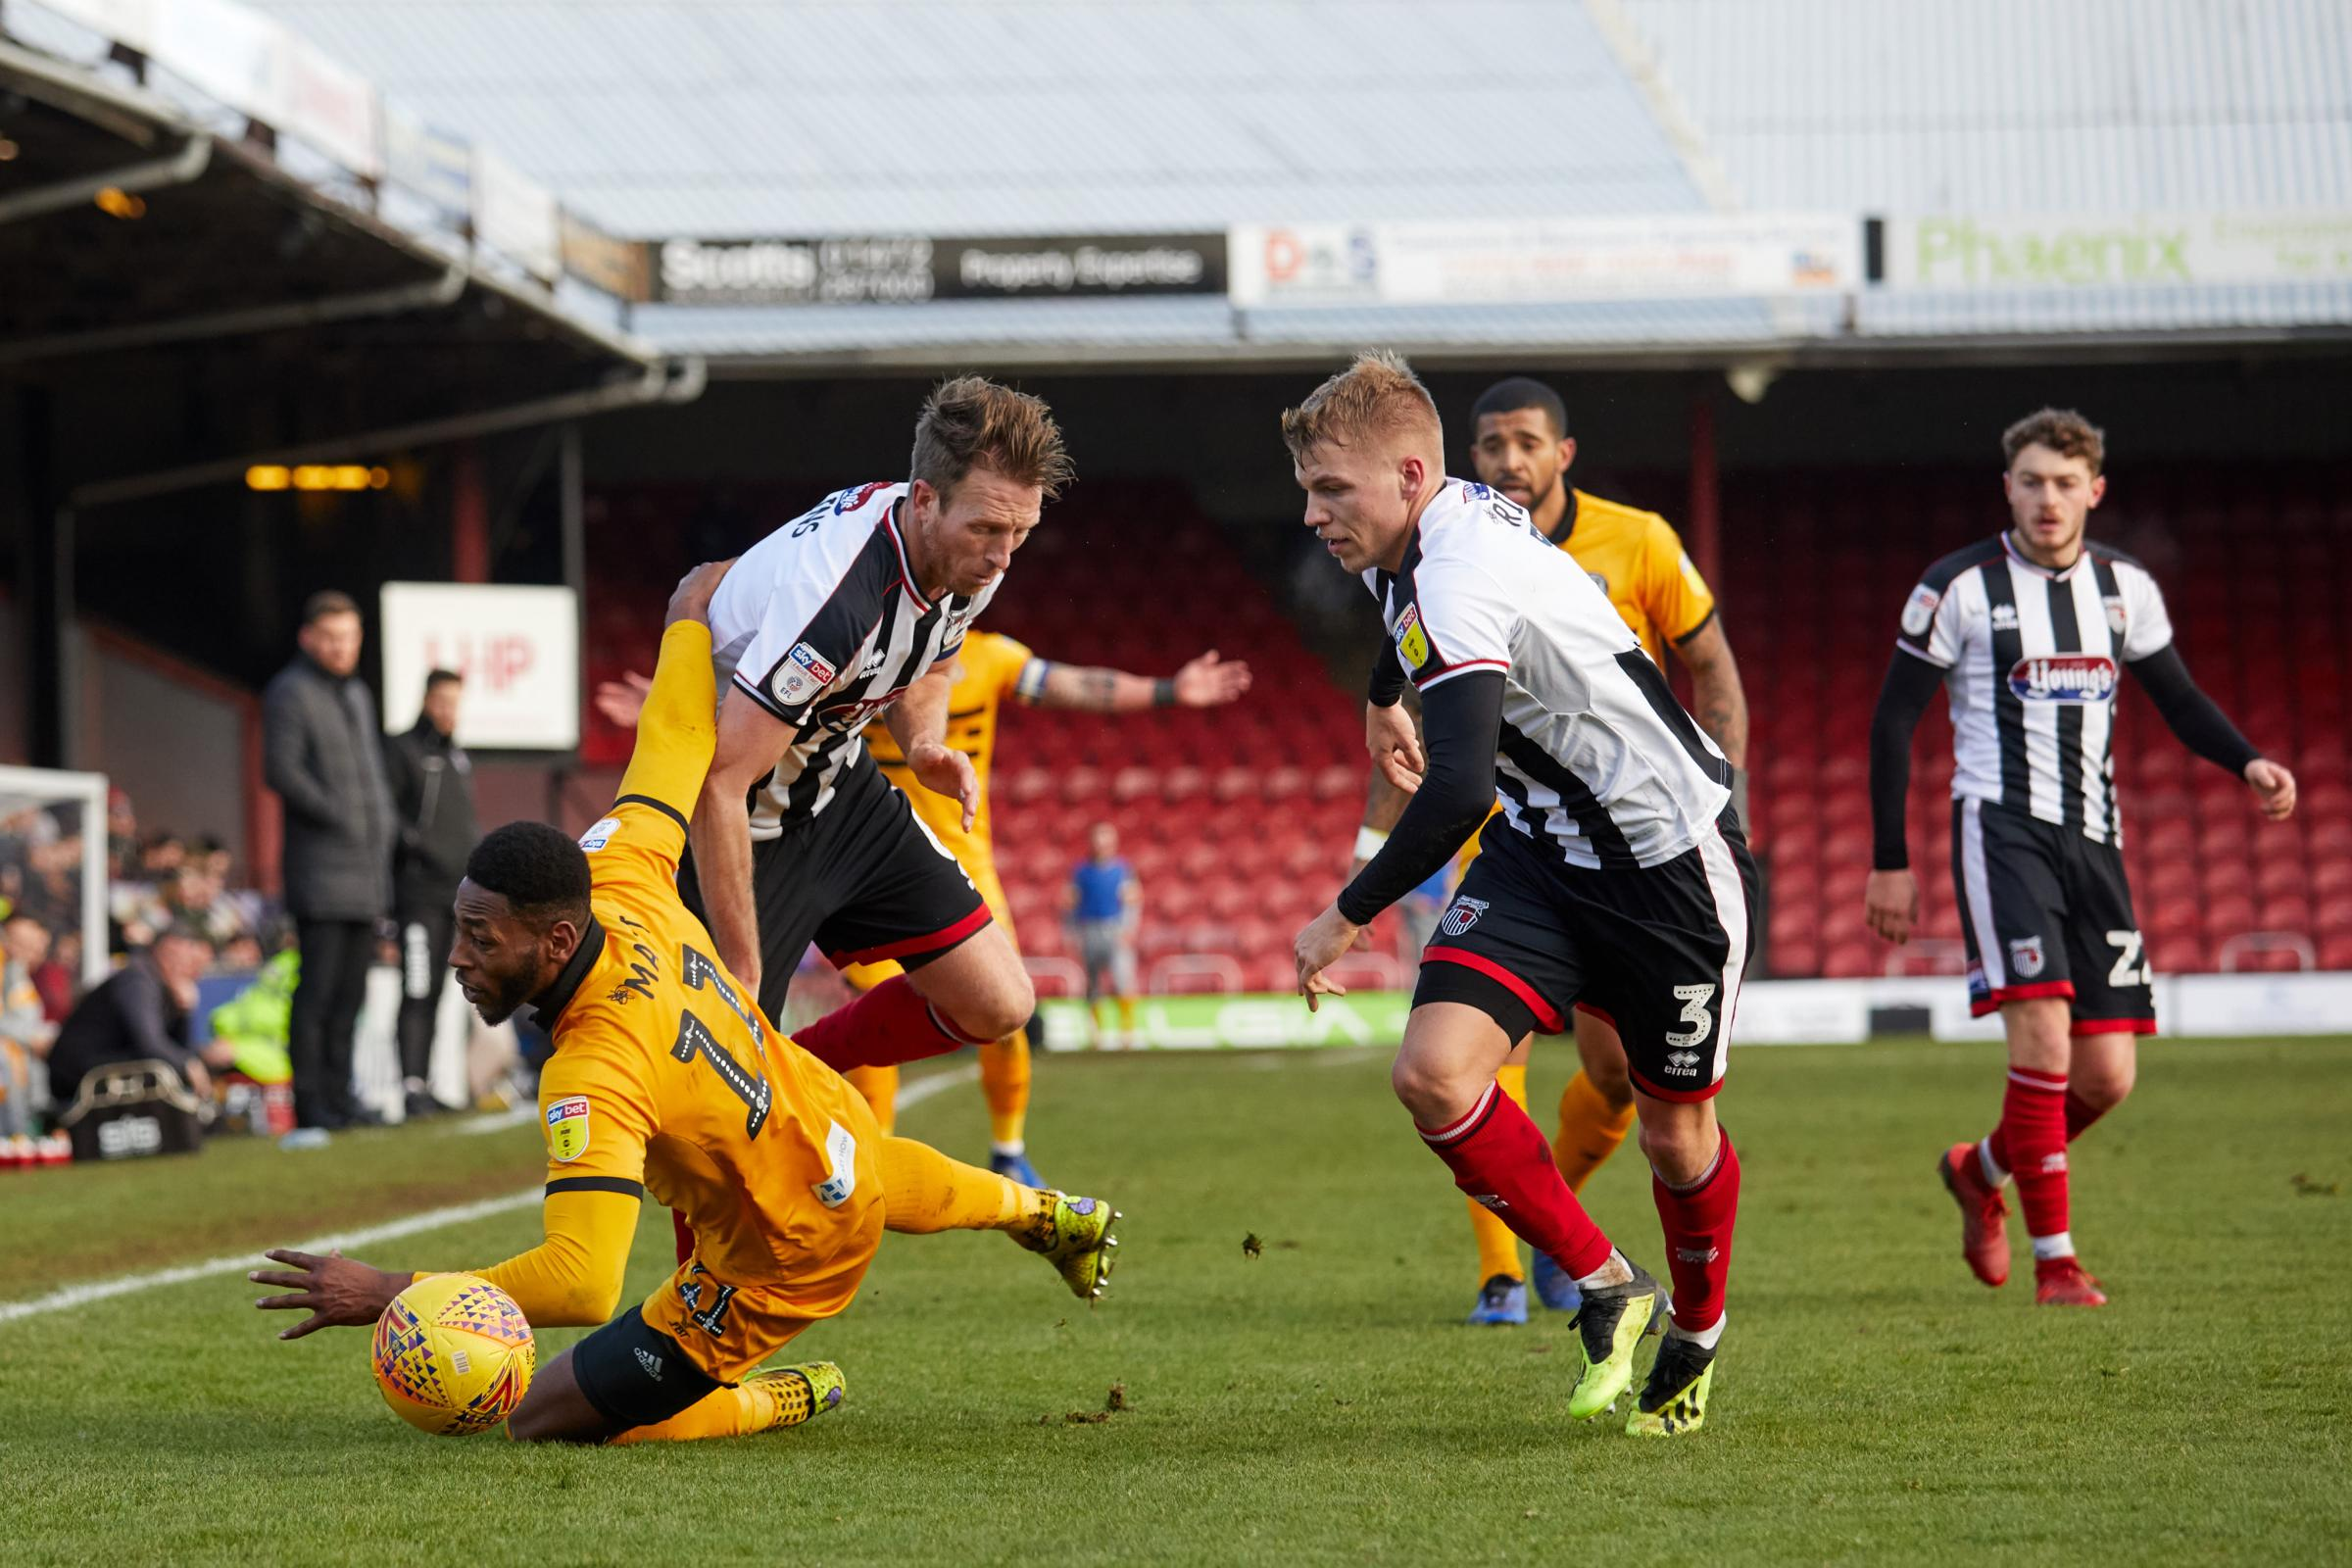 DOWN: Newport County striker Jamille Matt takes a tumble at Grimsby Town. Pictures: Huw Evans Agency